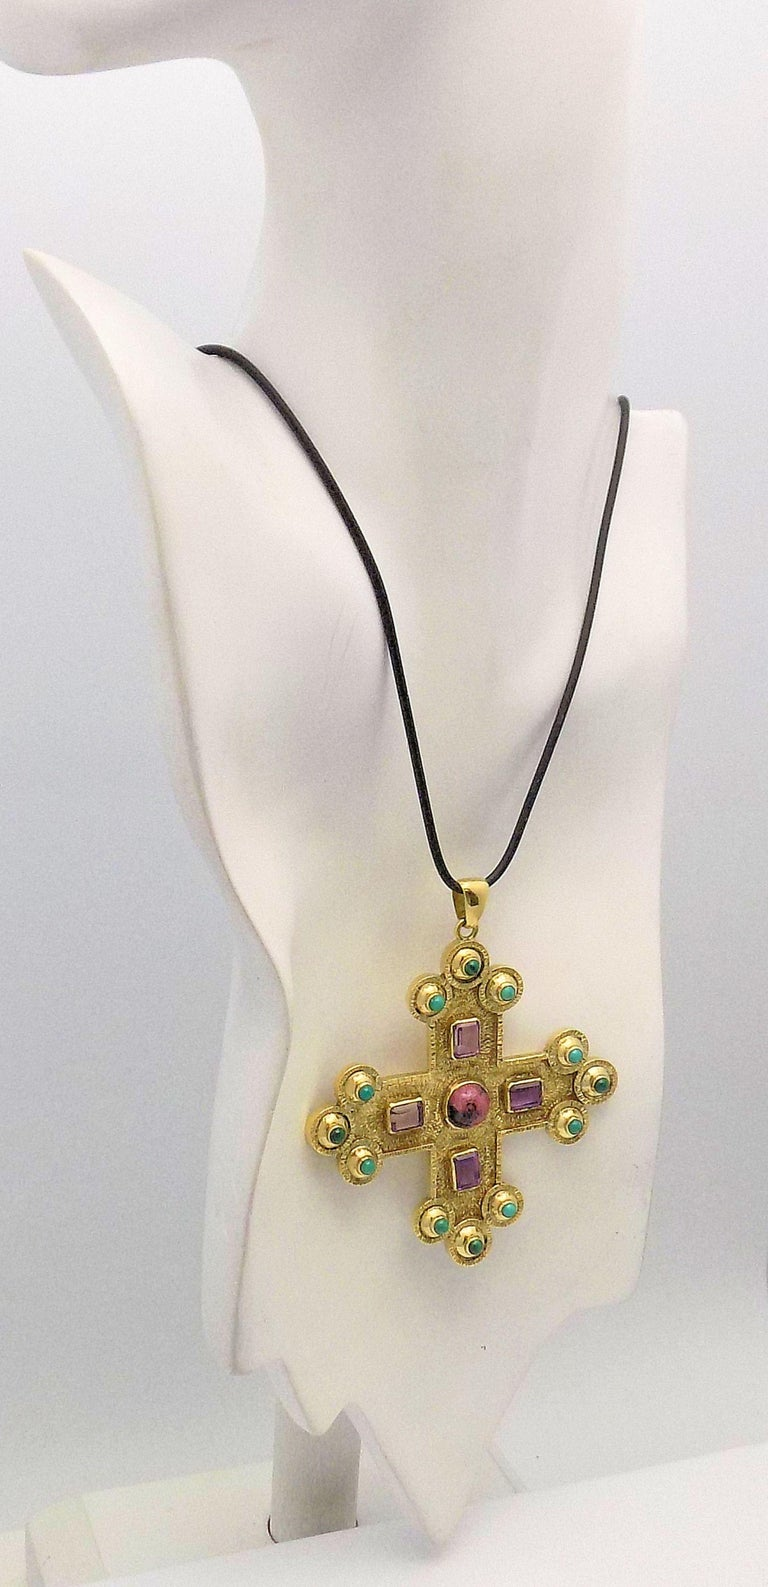 Amethyst, Turquoise, Malachite and Rhodochrosite Textured Gothic Cross Pendant In As New Condition For Sale In Dallas, TX